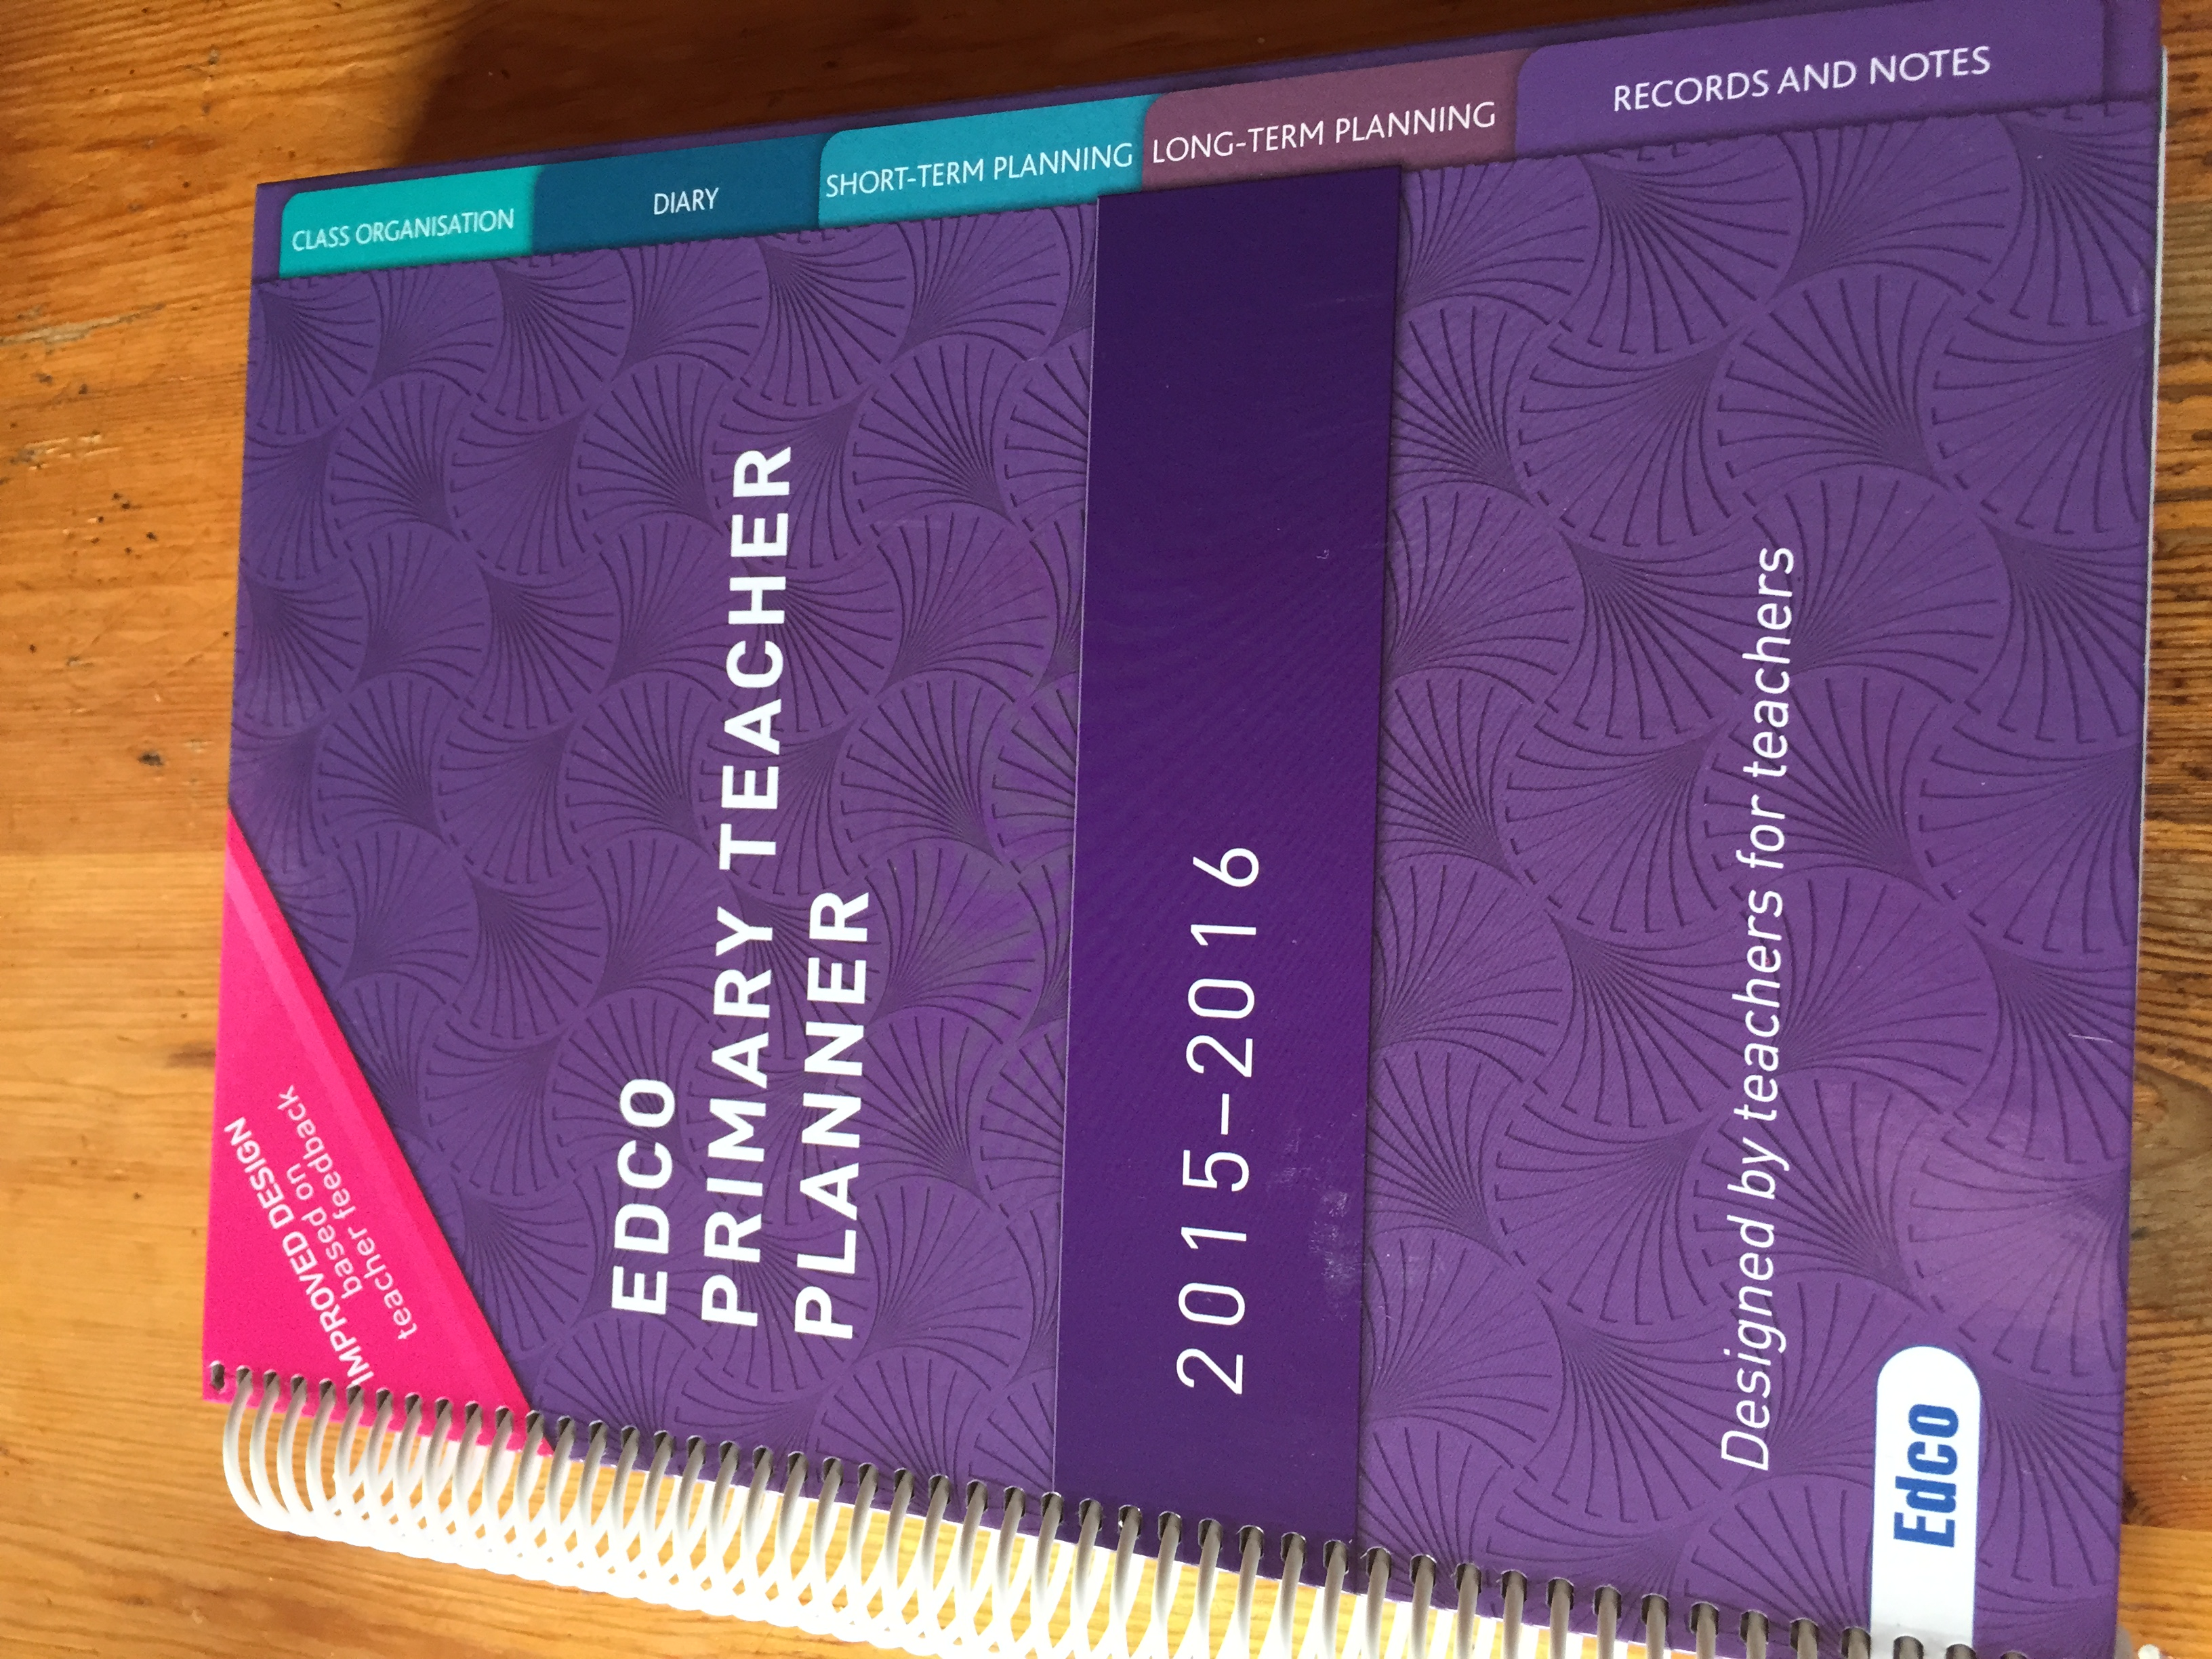 Review of the Edco Teacher Planner 2016